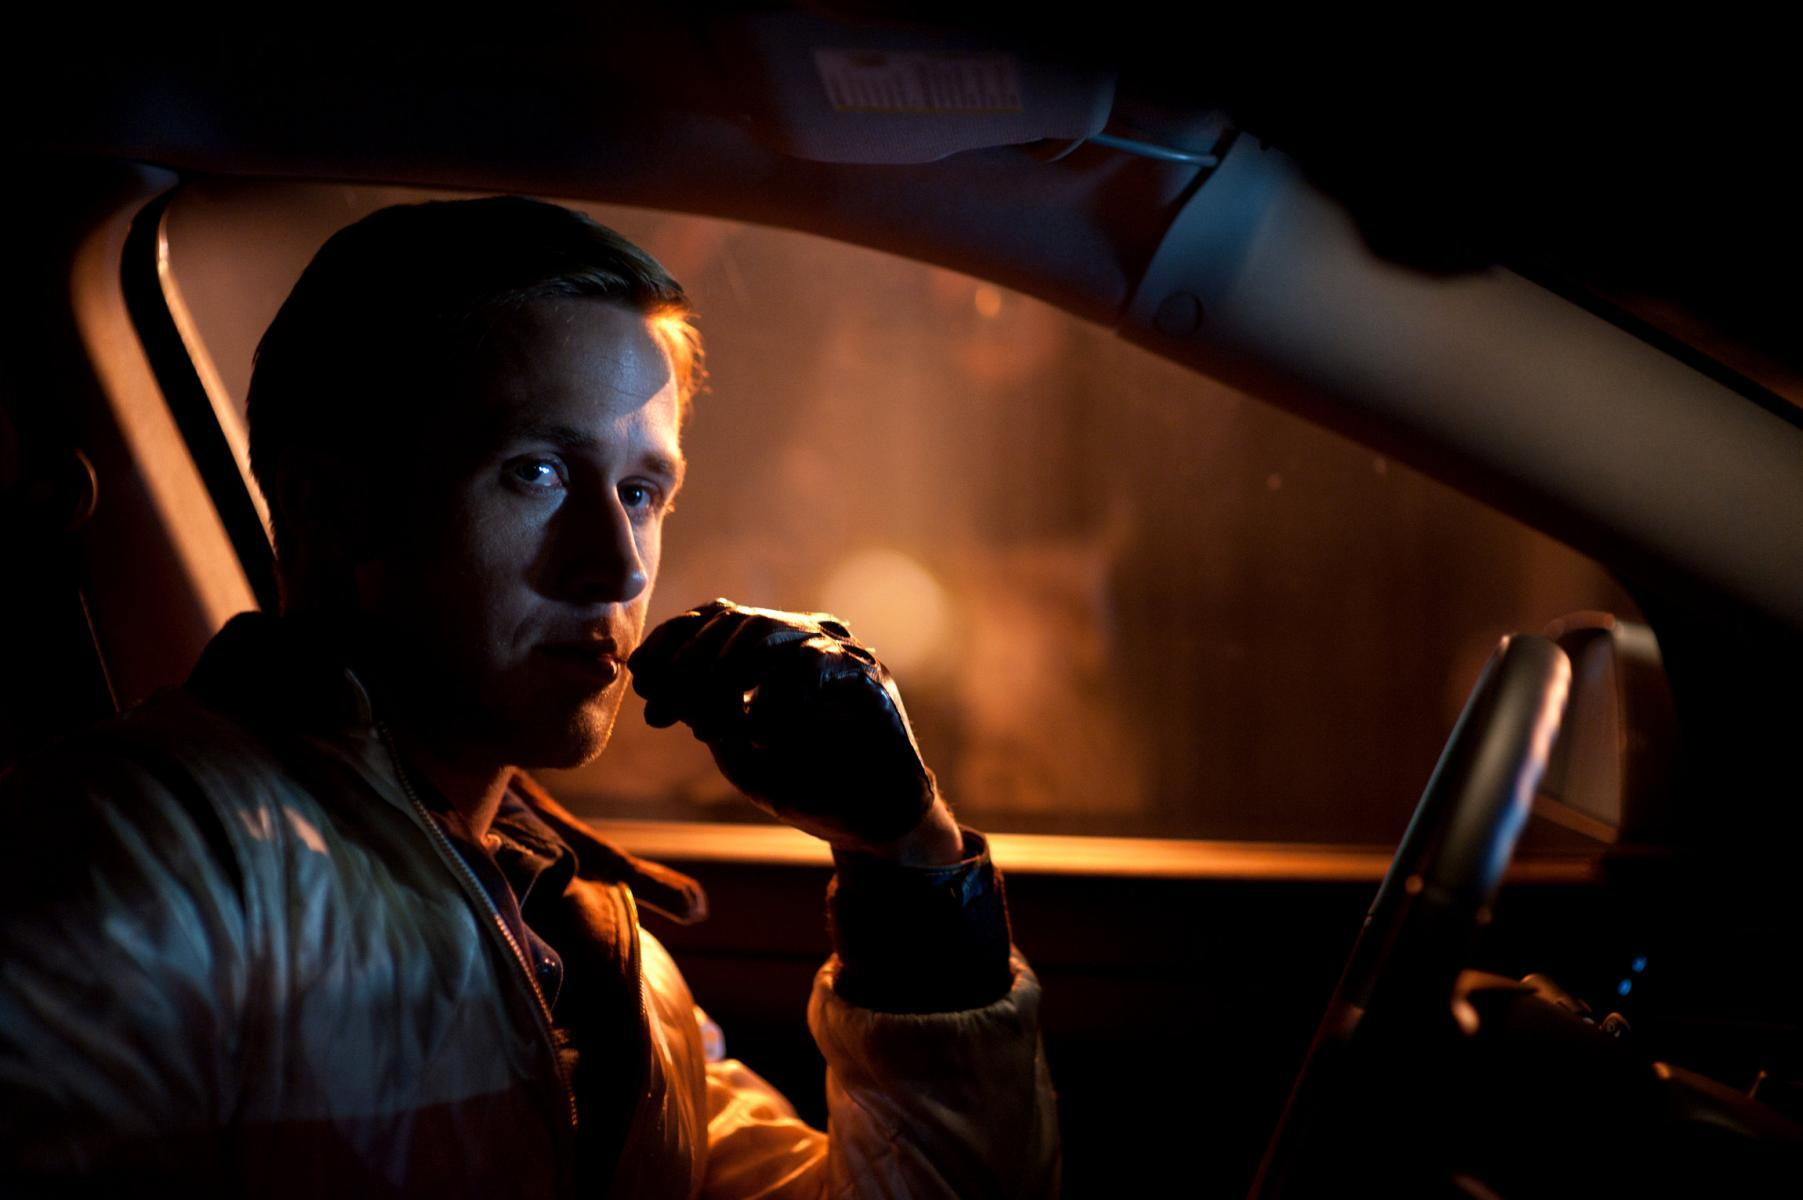 Ryan Gosling Set to Play the New 'Wolfman' for Universal